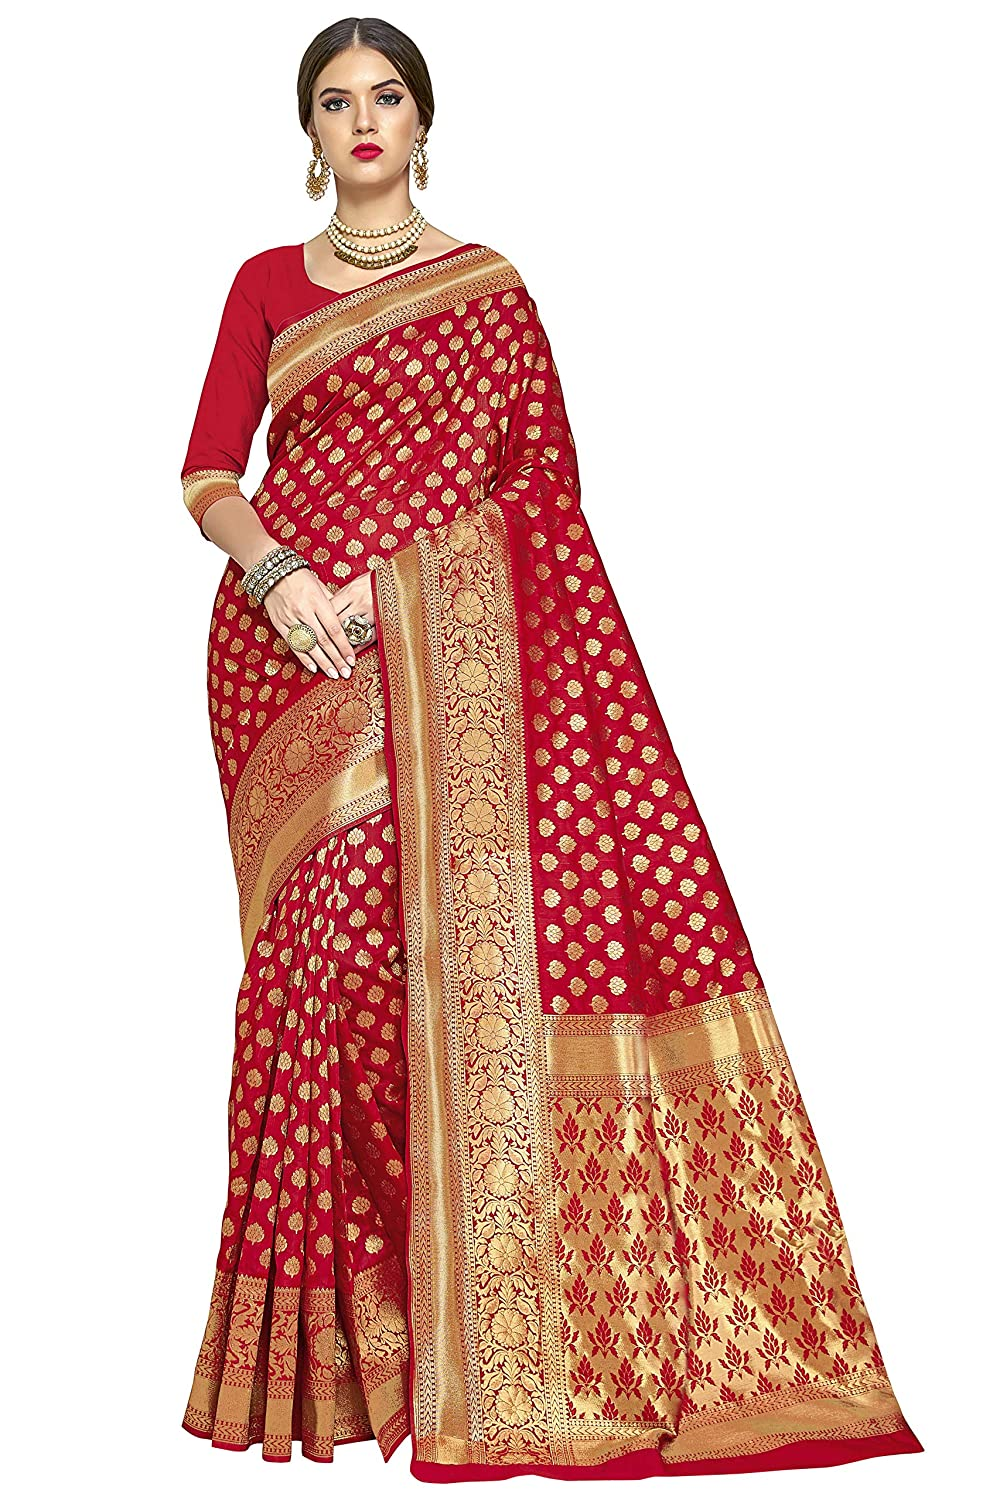 Glory Sarees Women's Kanchipuram Art Silk Saree With Blouse Piece (kara115red_Red)